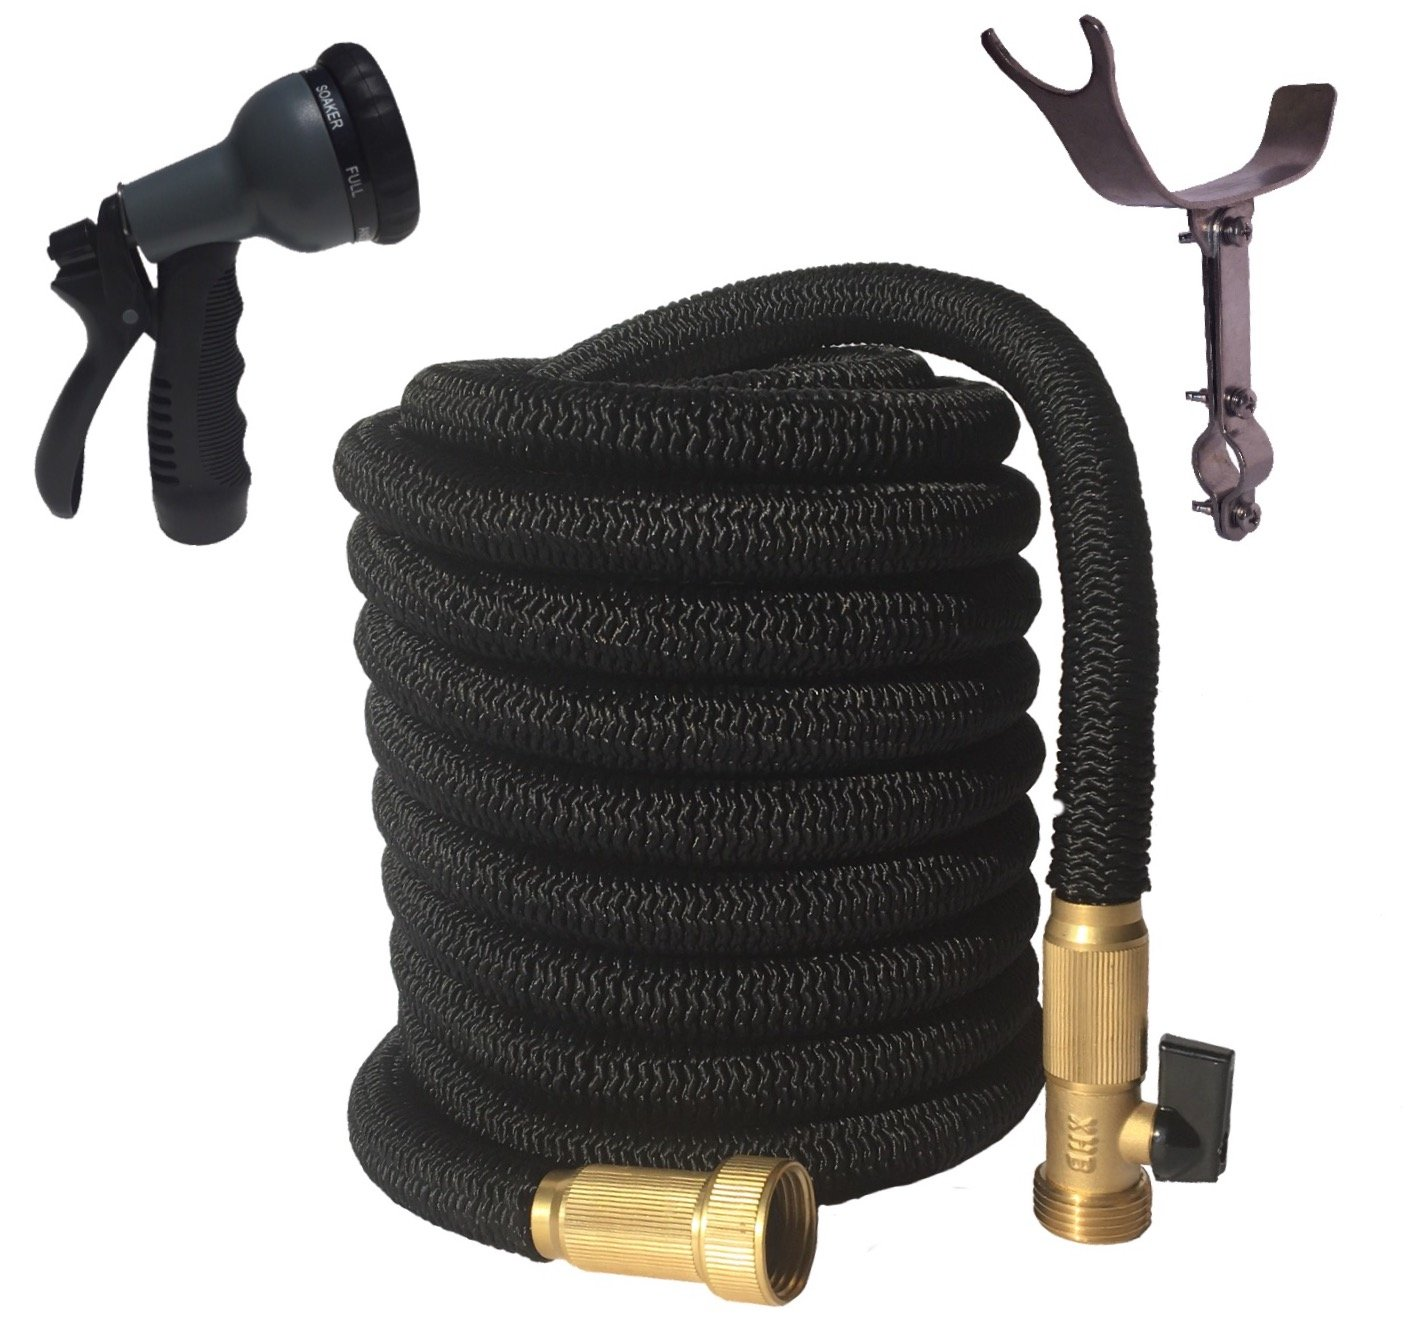 Black Expandable Garden Hose (75 Foot)